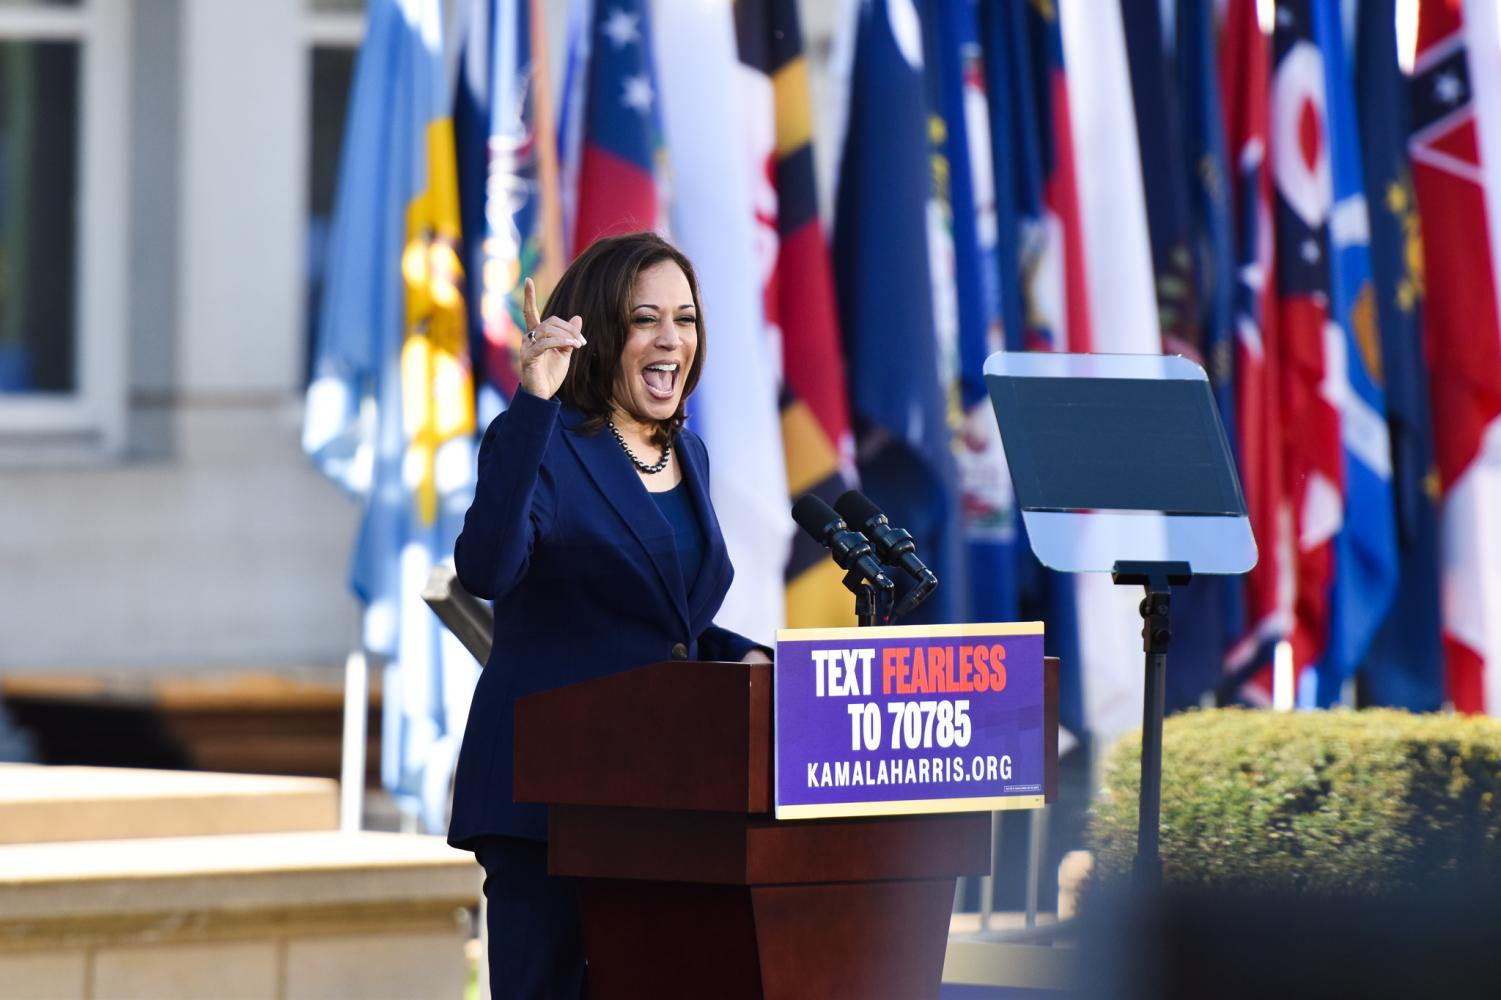 Kamala Harris addresses a large crowd gathered in the Frank Ogawa Plaza in her hometown, Oakland, on Jan. 27 to officially announce her bid for presidency in 2020.